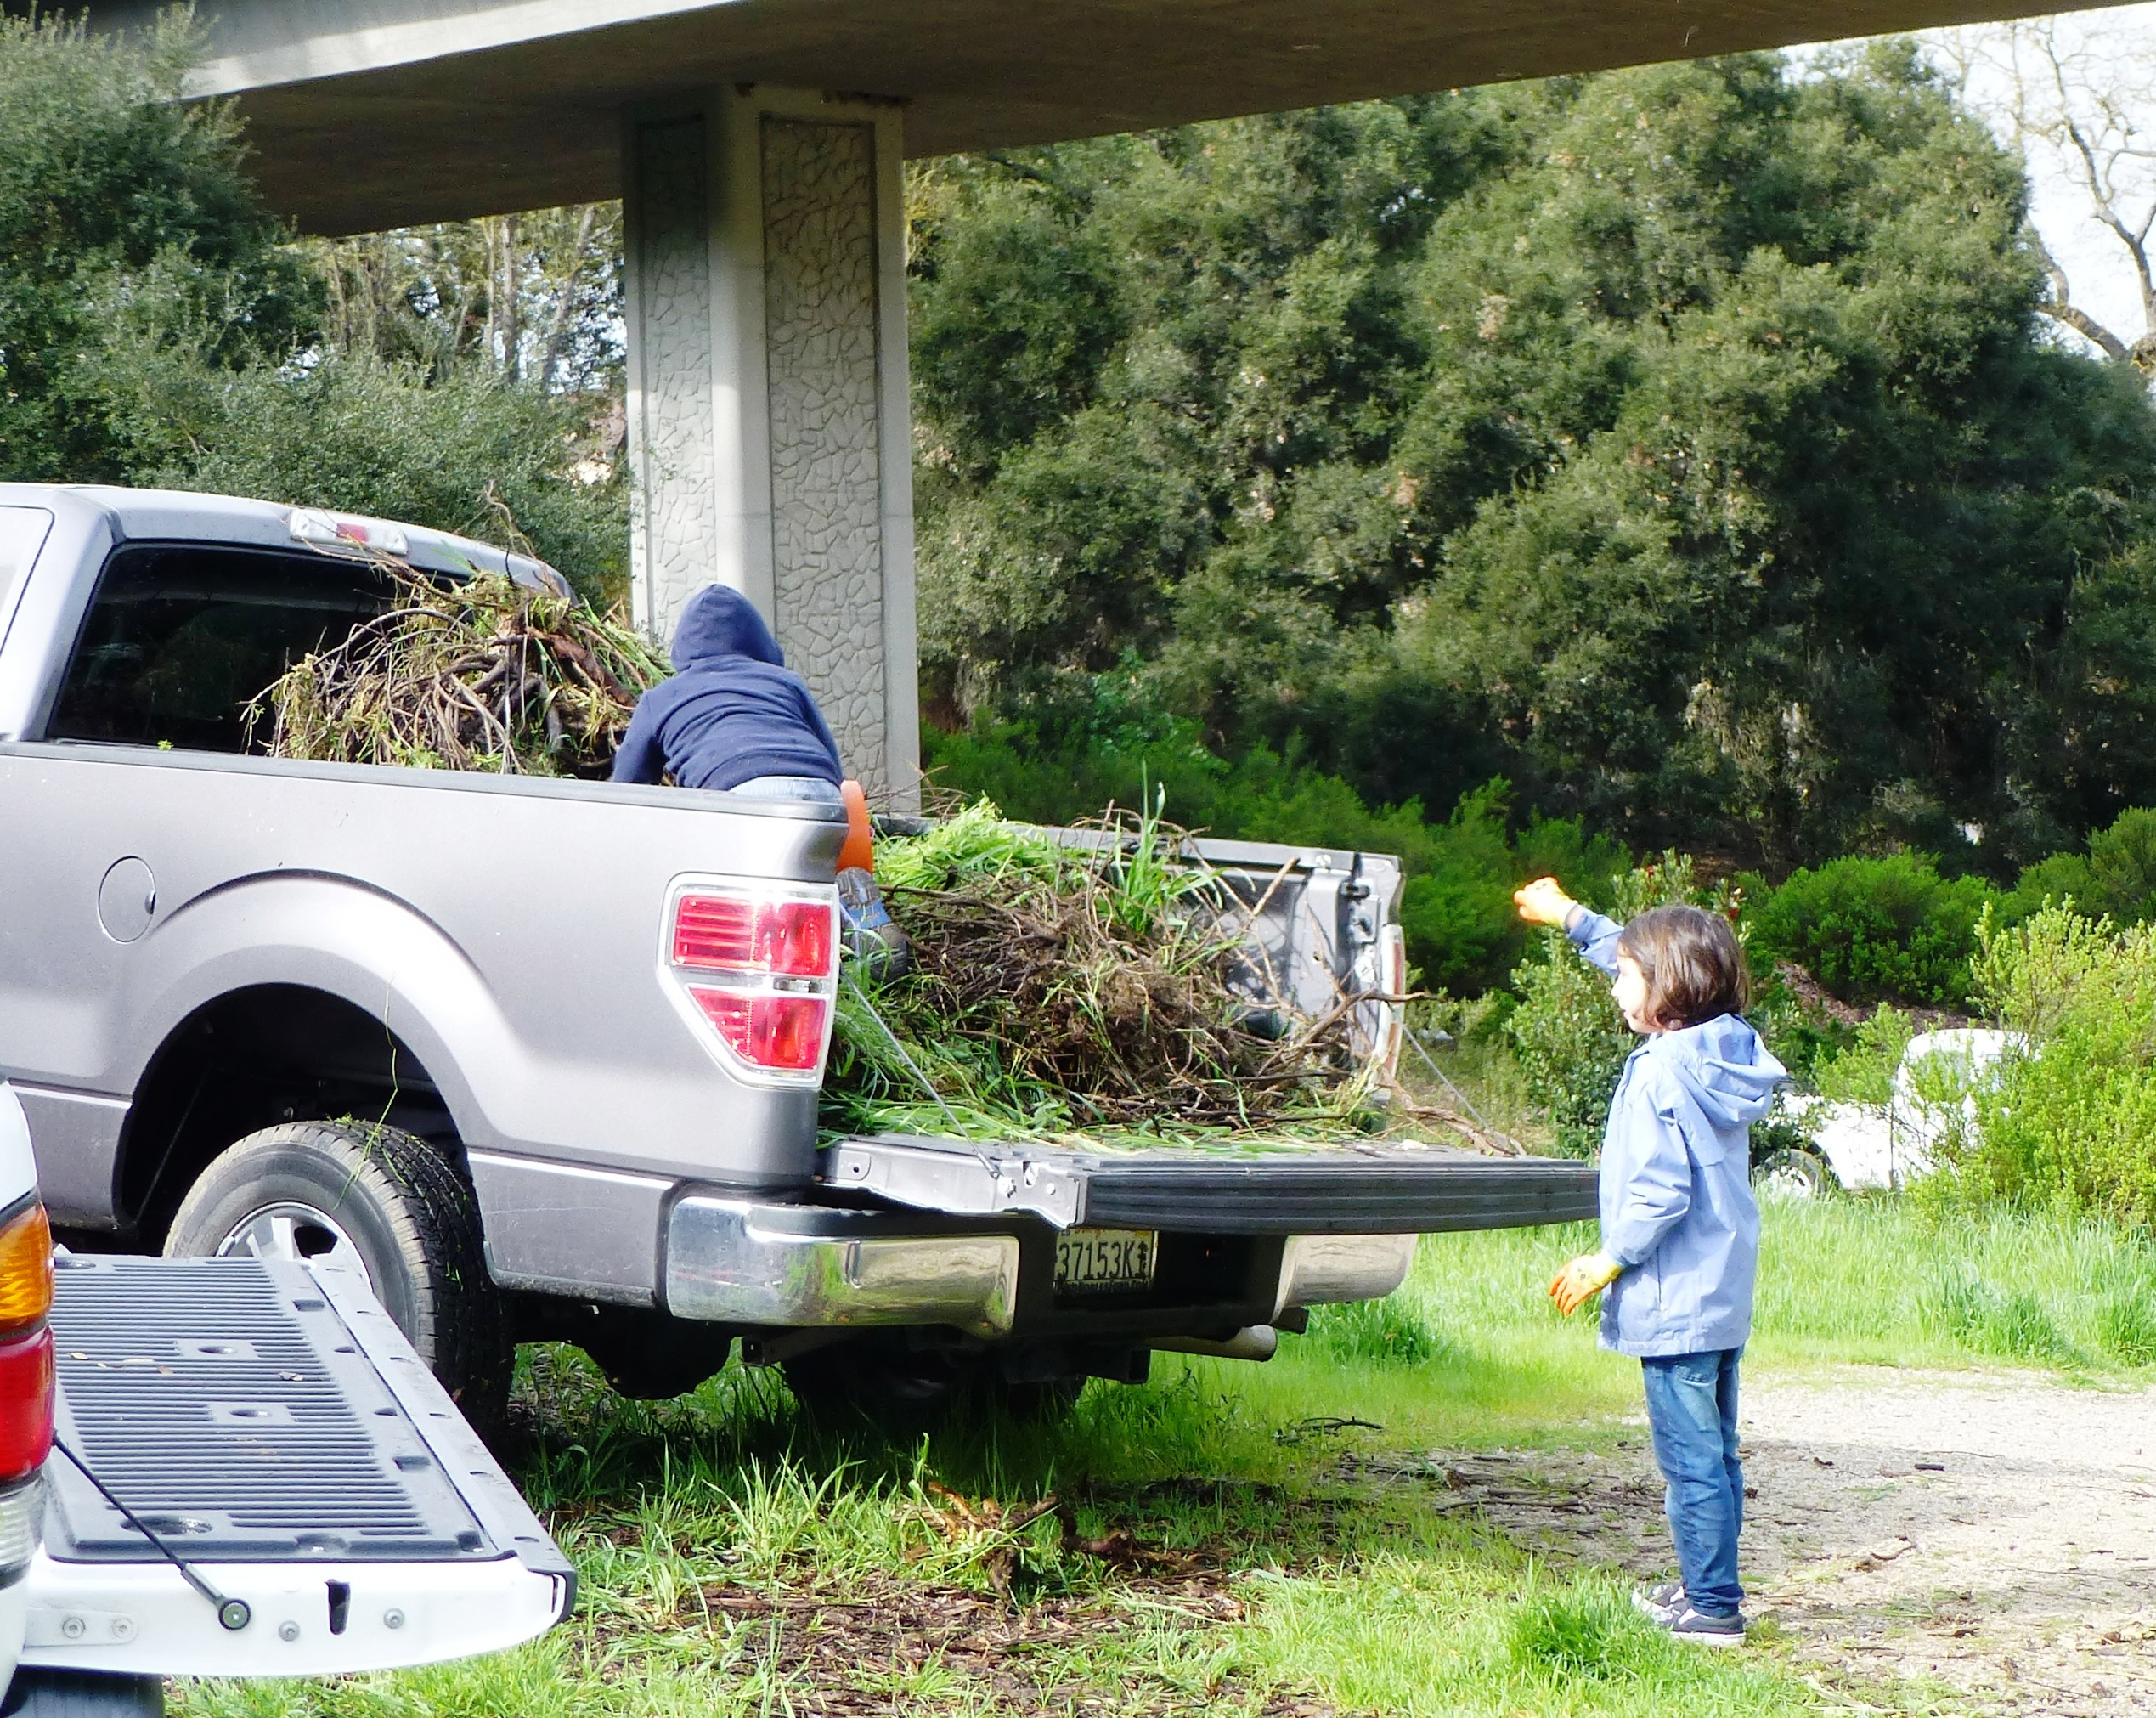 Atascadero Helpers load weeds into the truck!